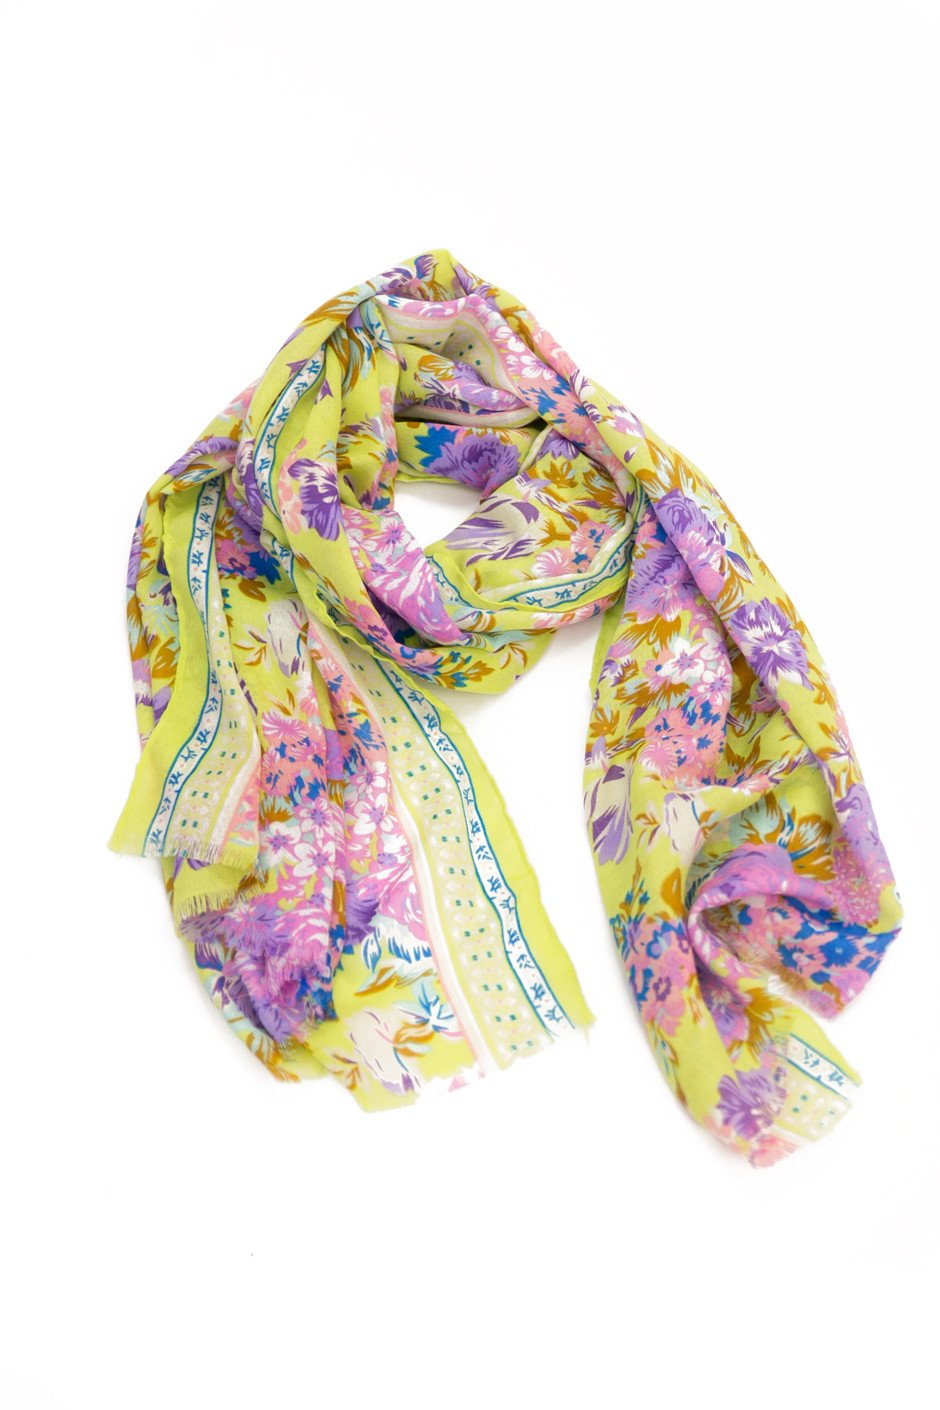 Floral Pattern Sheer Scarf - Neon Lime - Haute & Rebellious